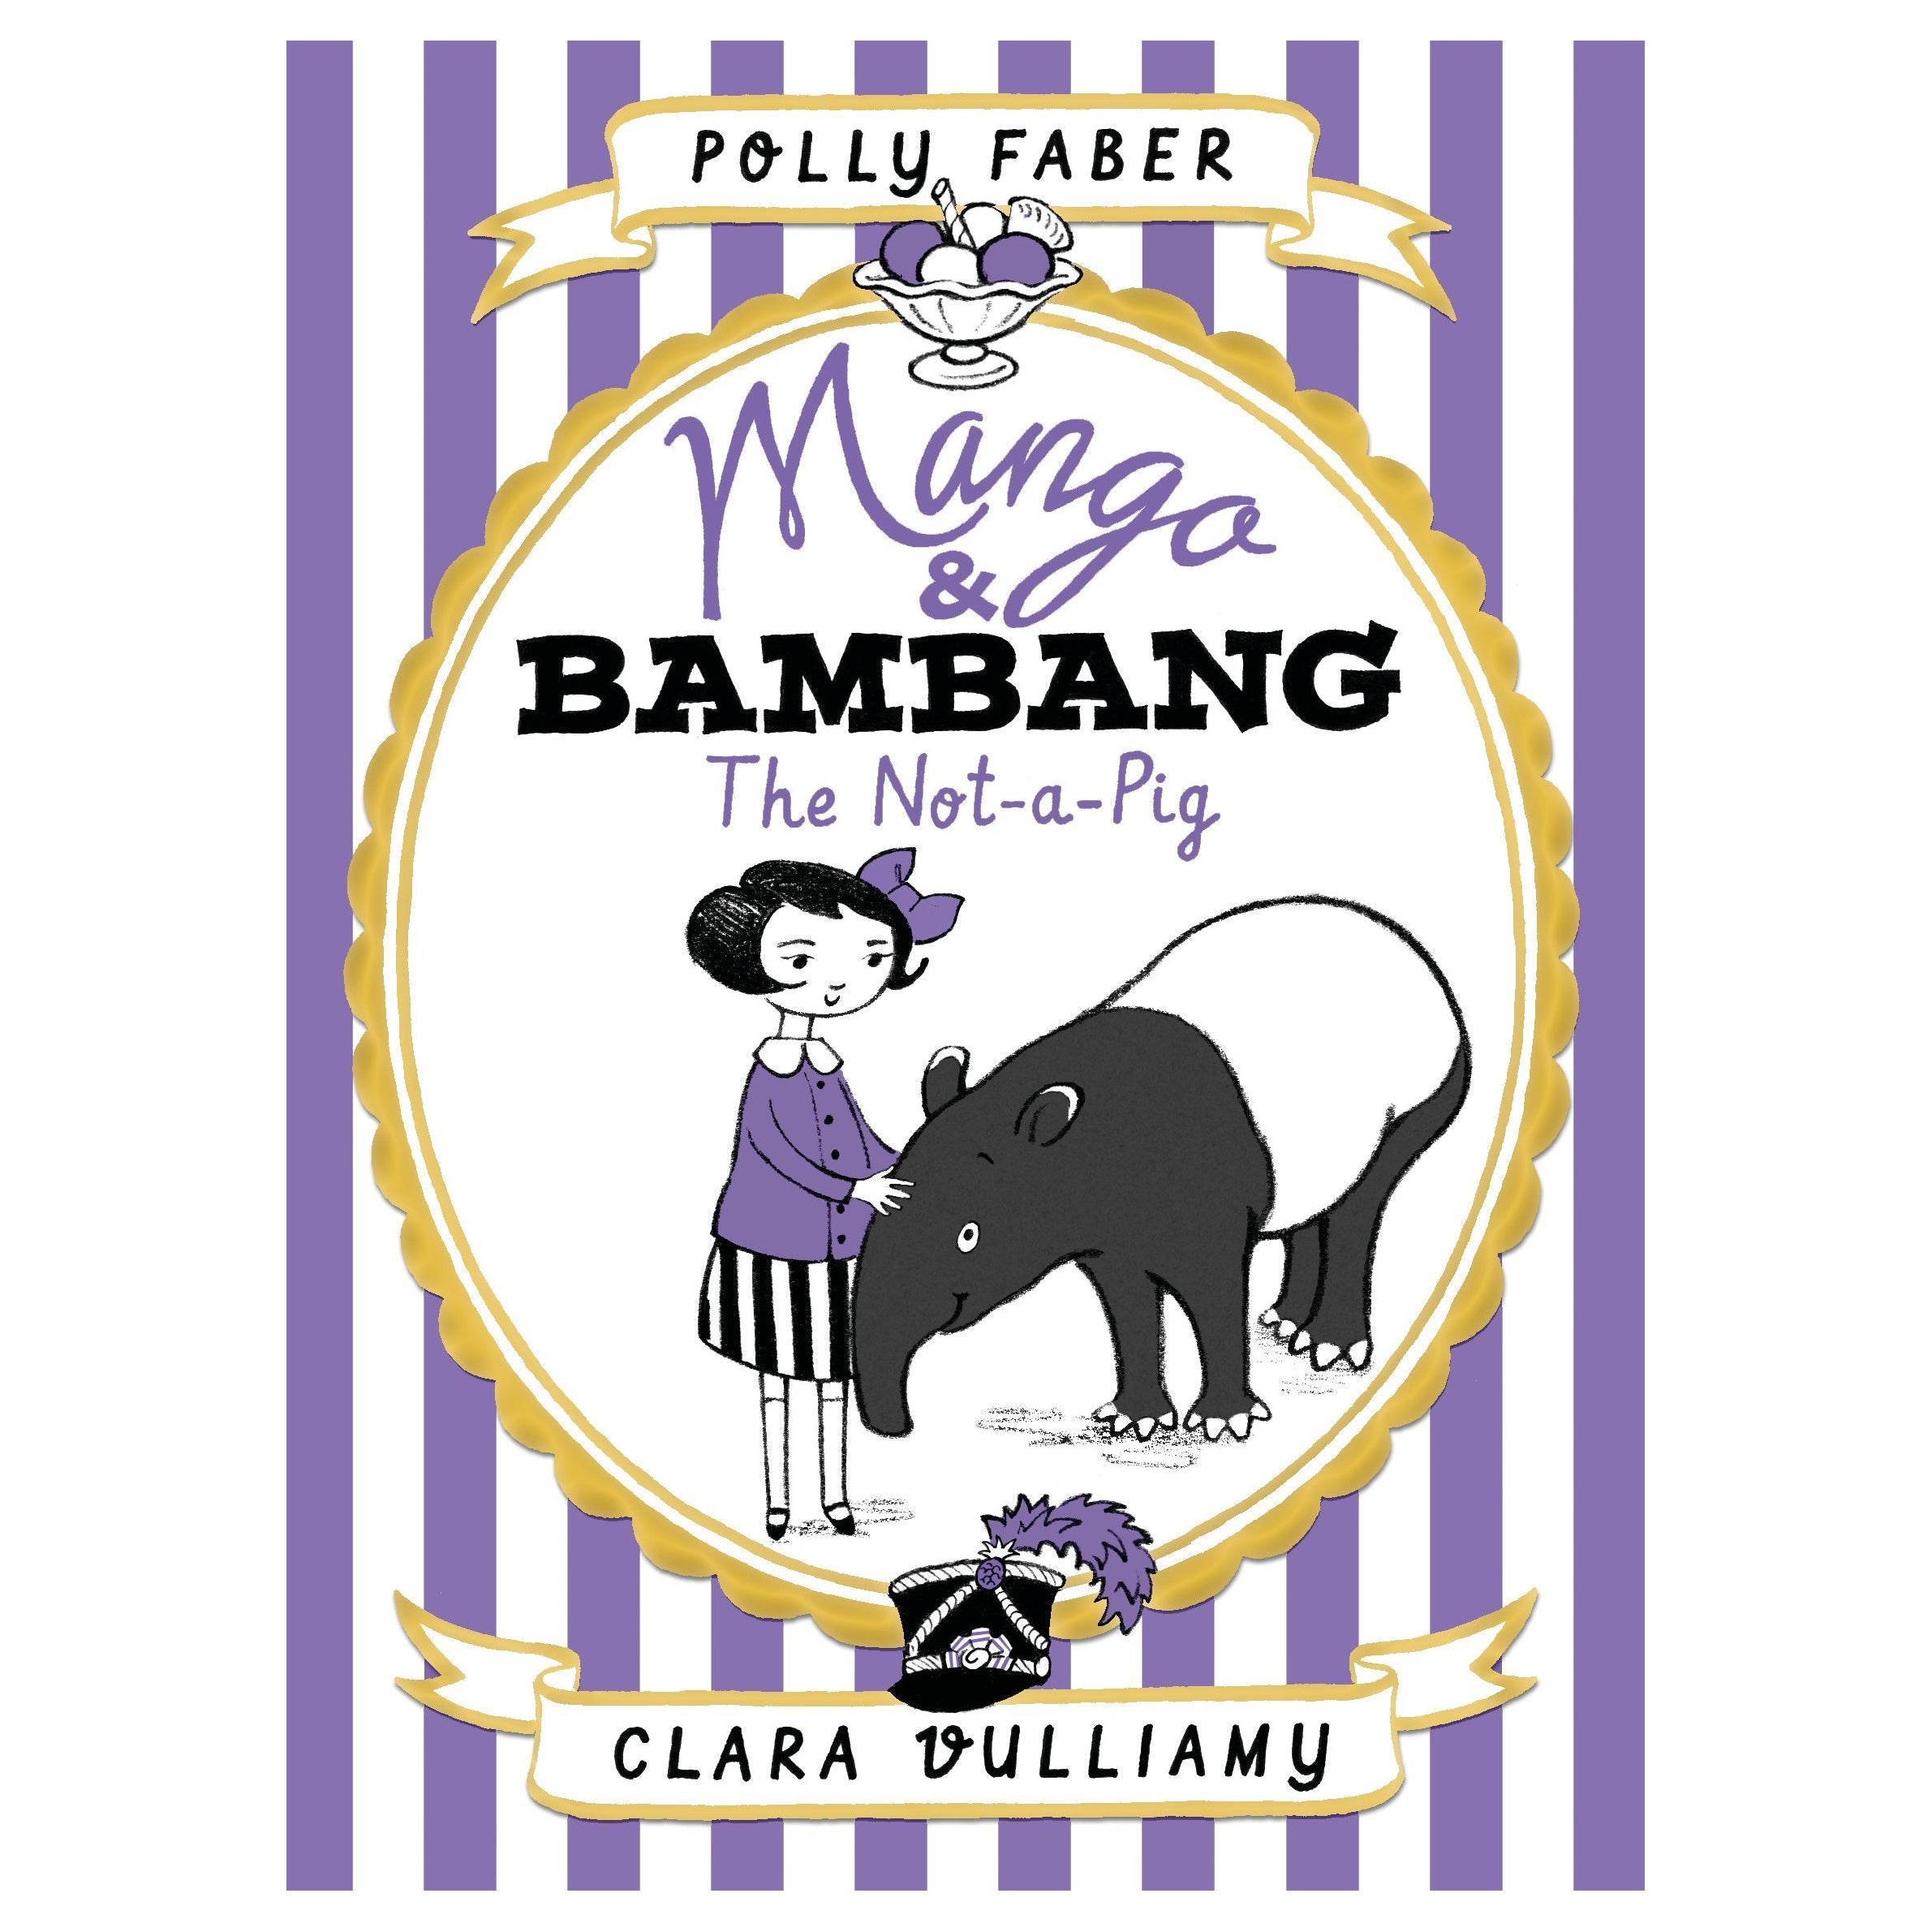 Mango & Bambang - The Not A Pig by Polly Faber